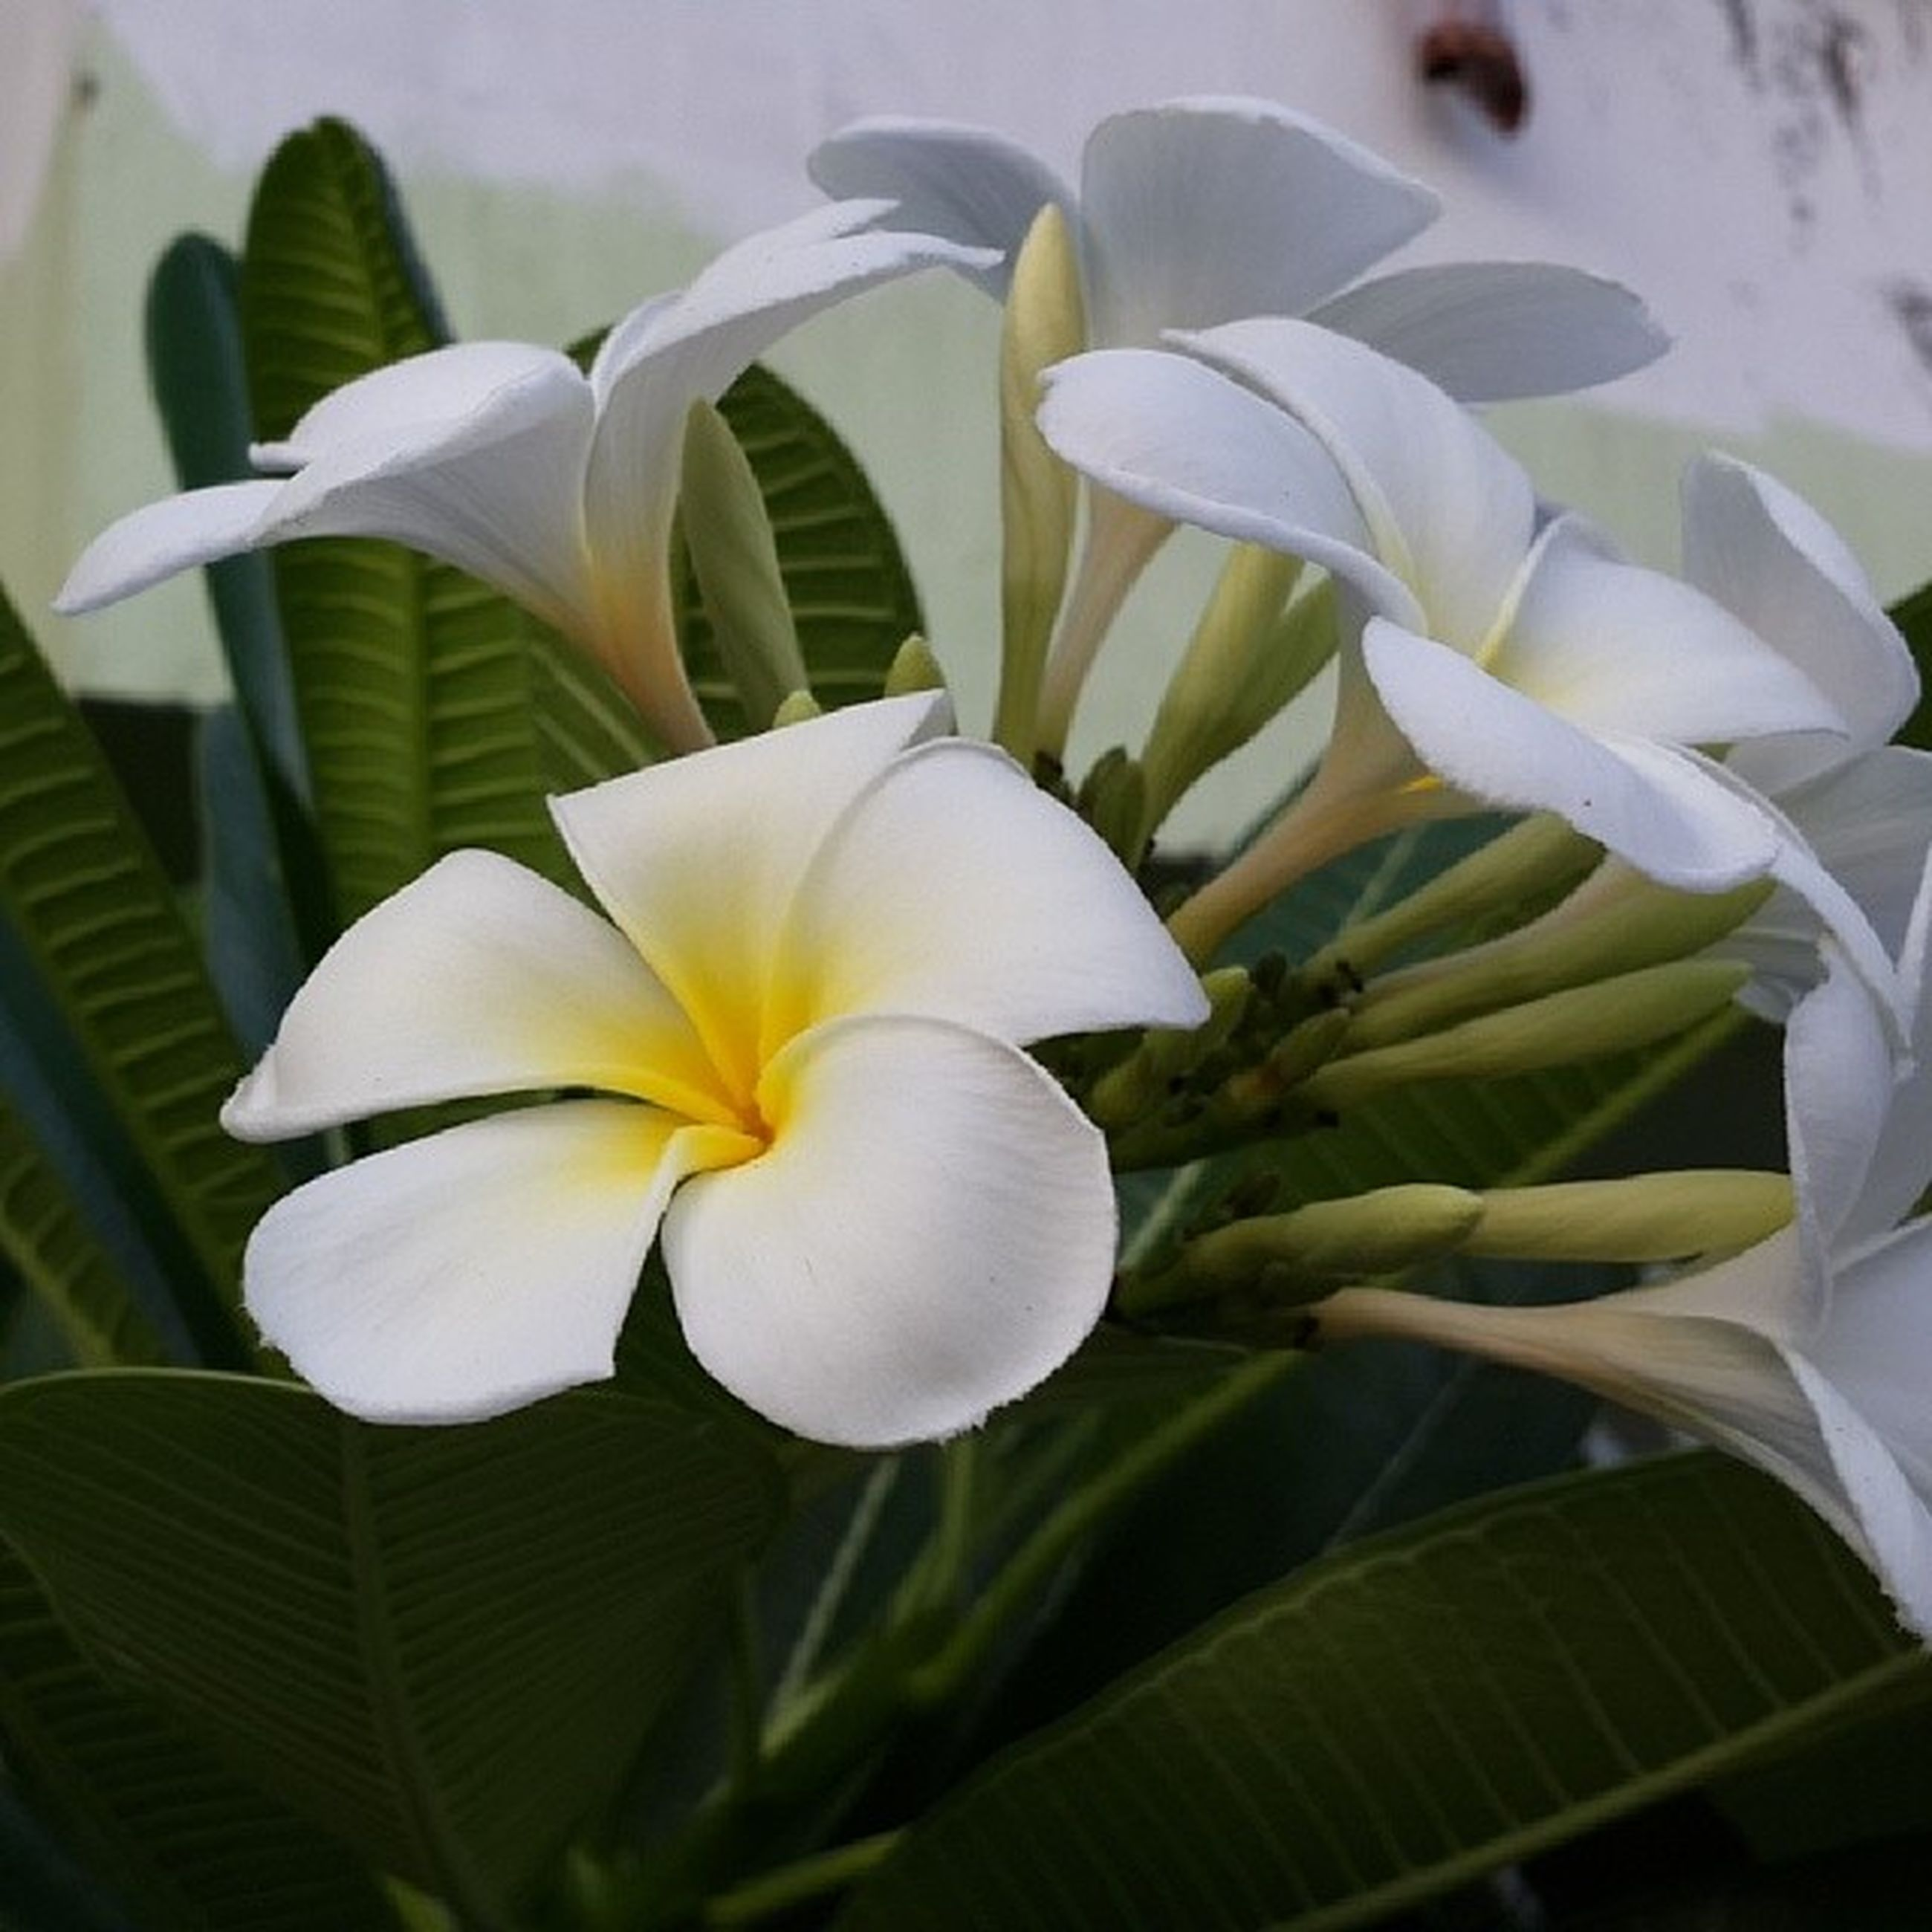 flower, petal, freshness, flower head, fragility, growth, white color, beauty in nature, plant, close-up, leaf, blooming, nature, indoors, in bloom, focus on foreground, stem, white, blossom, no people